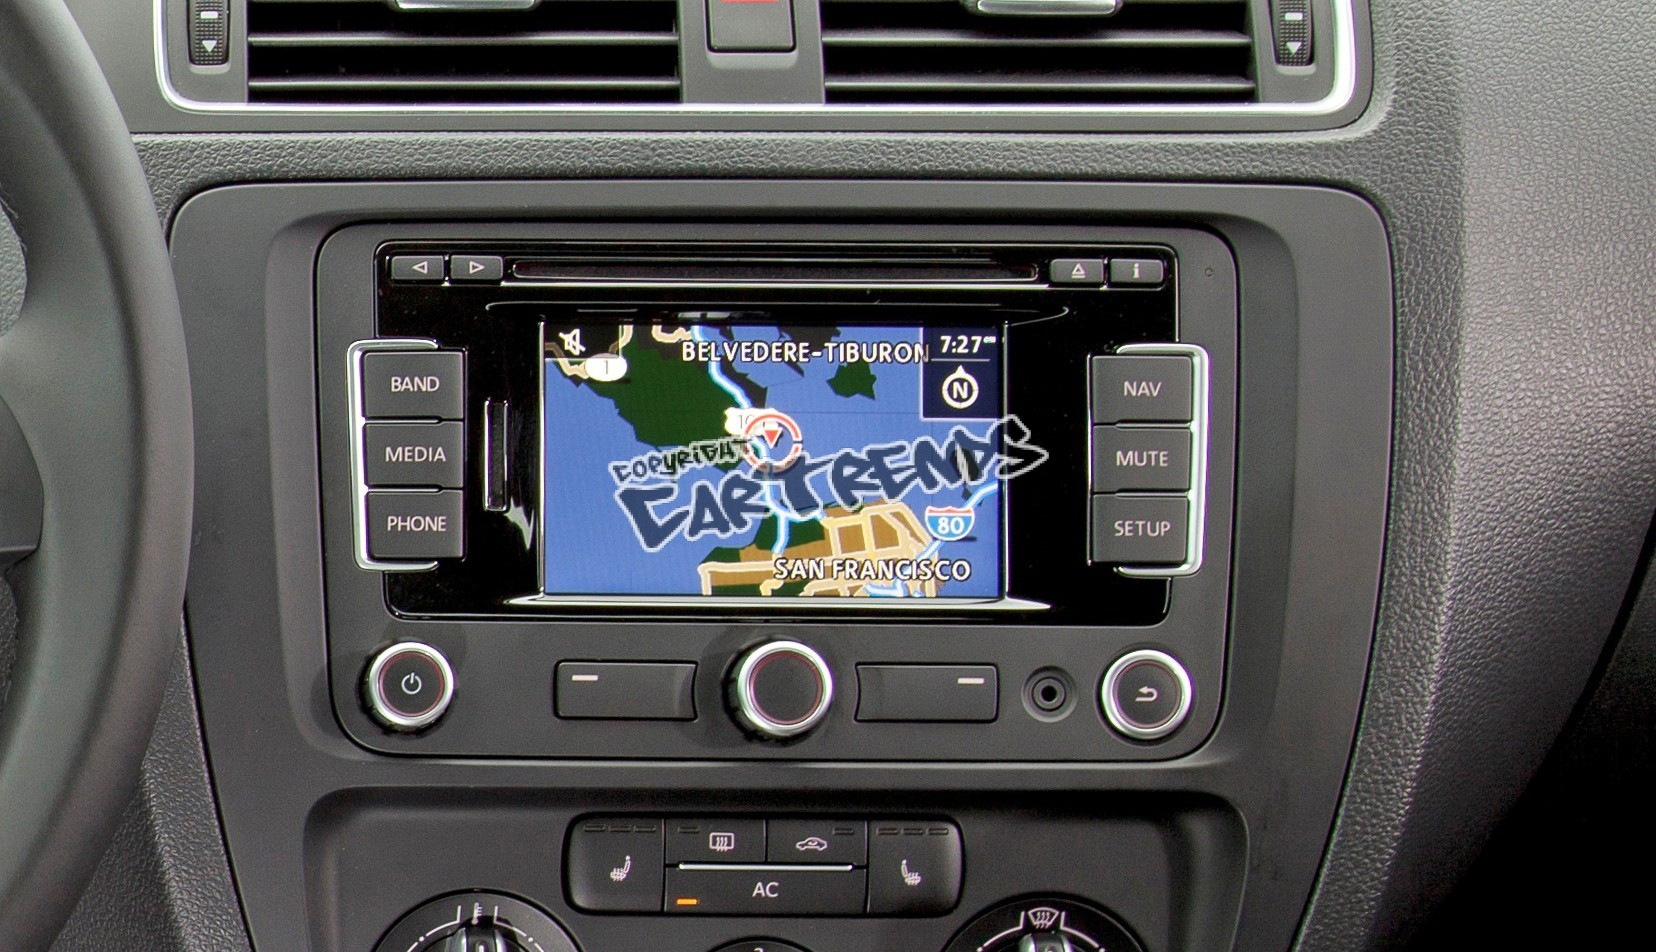 vw rns315 navigation incl bluetooth. Black Bedroom Furniture Sets. Home Design Ideas